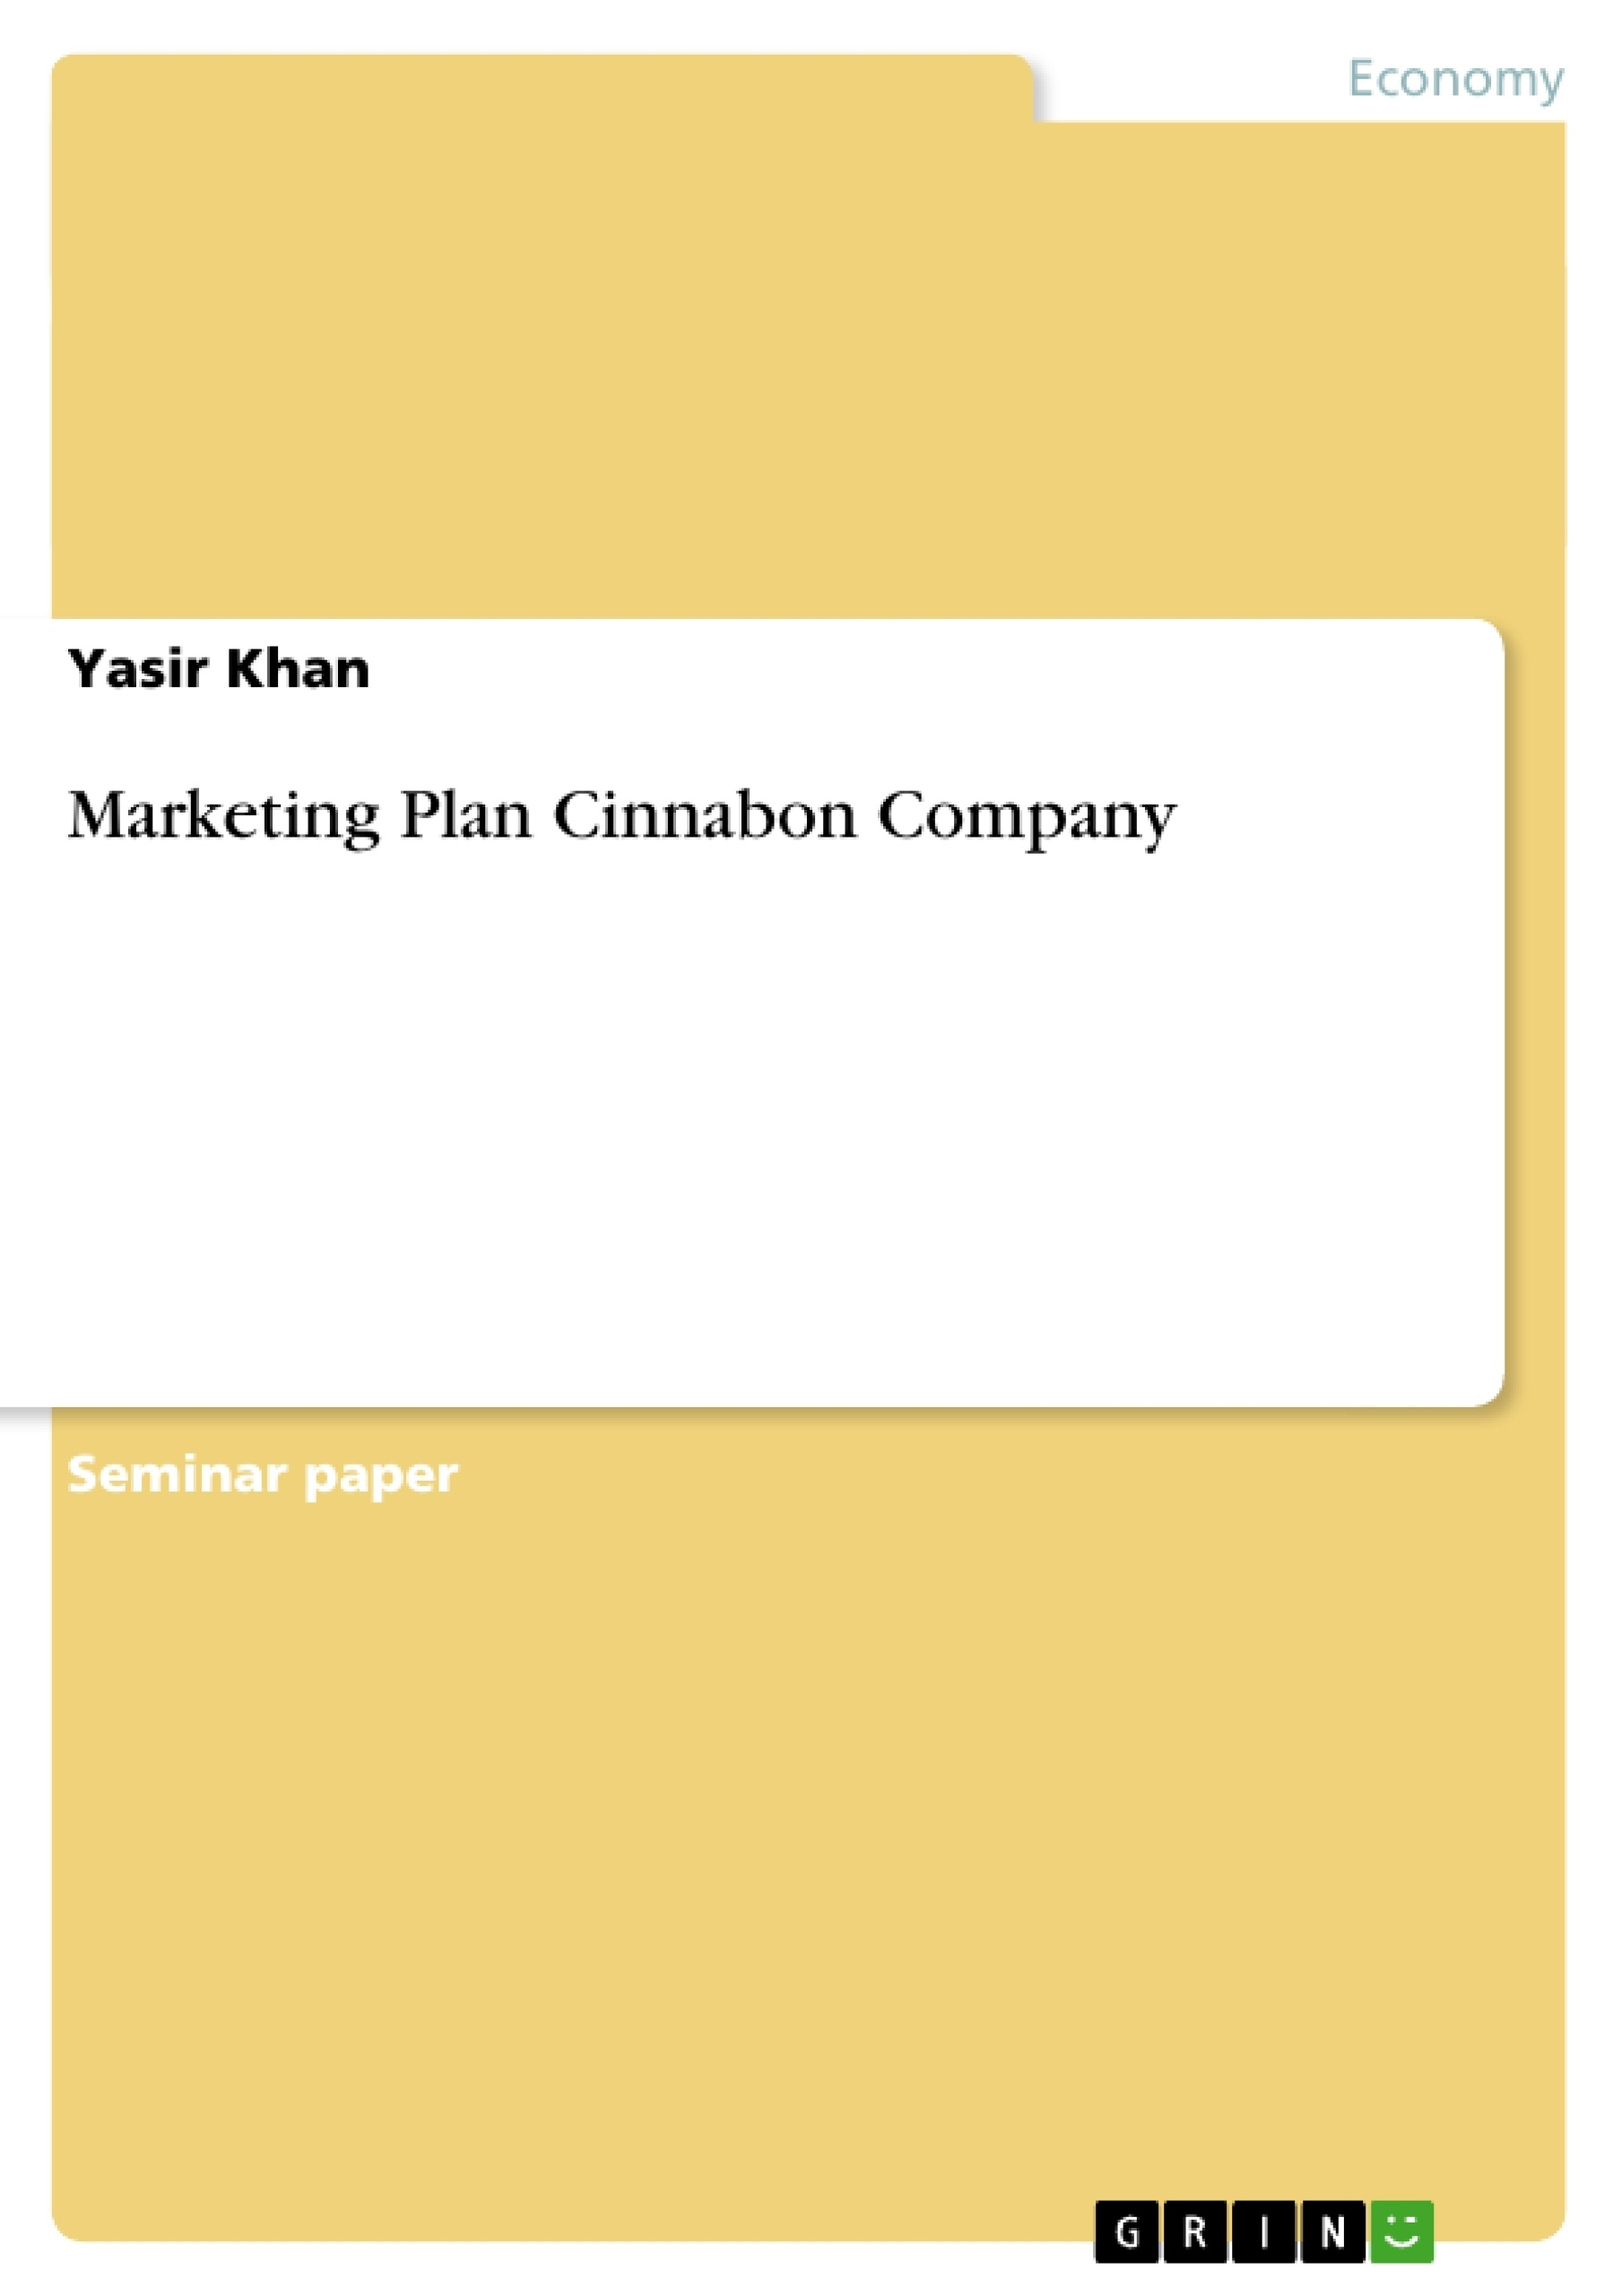 marketing plan cinnabon company publish your master s thesis marketing plan cinnabon company publish your master s thesis bachelor s thesis essay or term paper